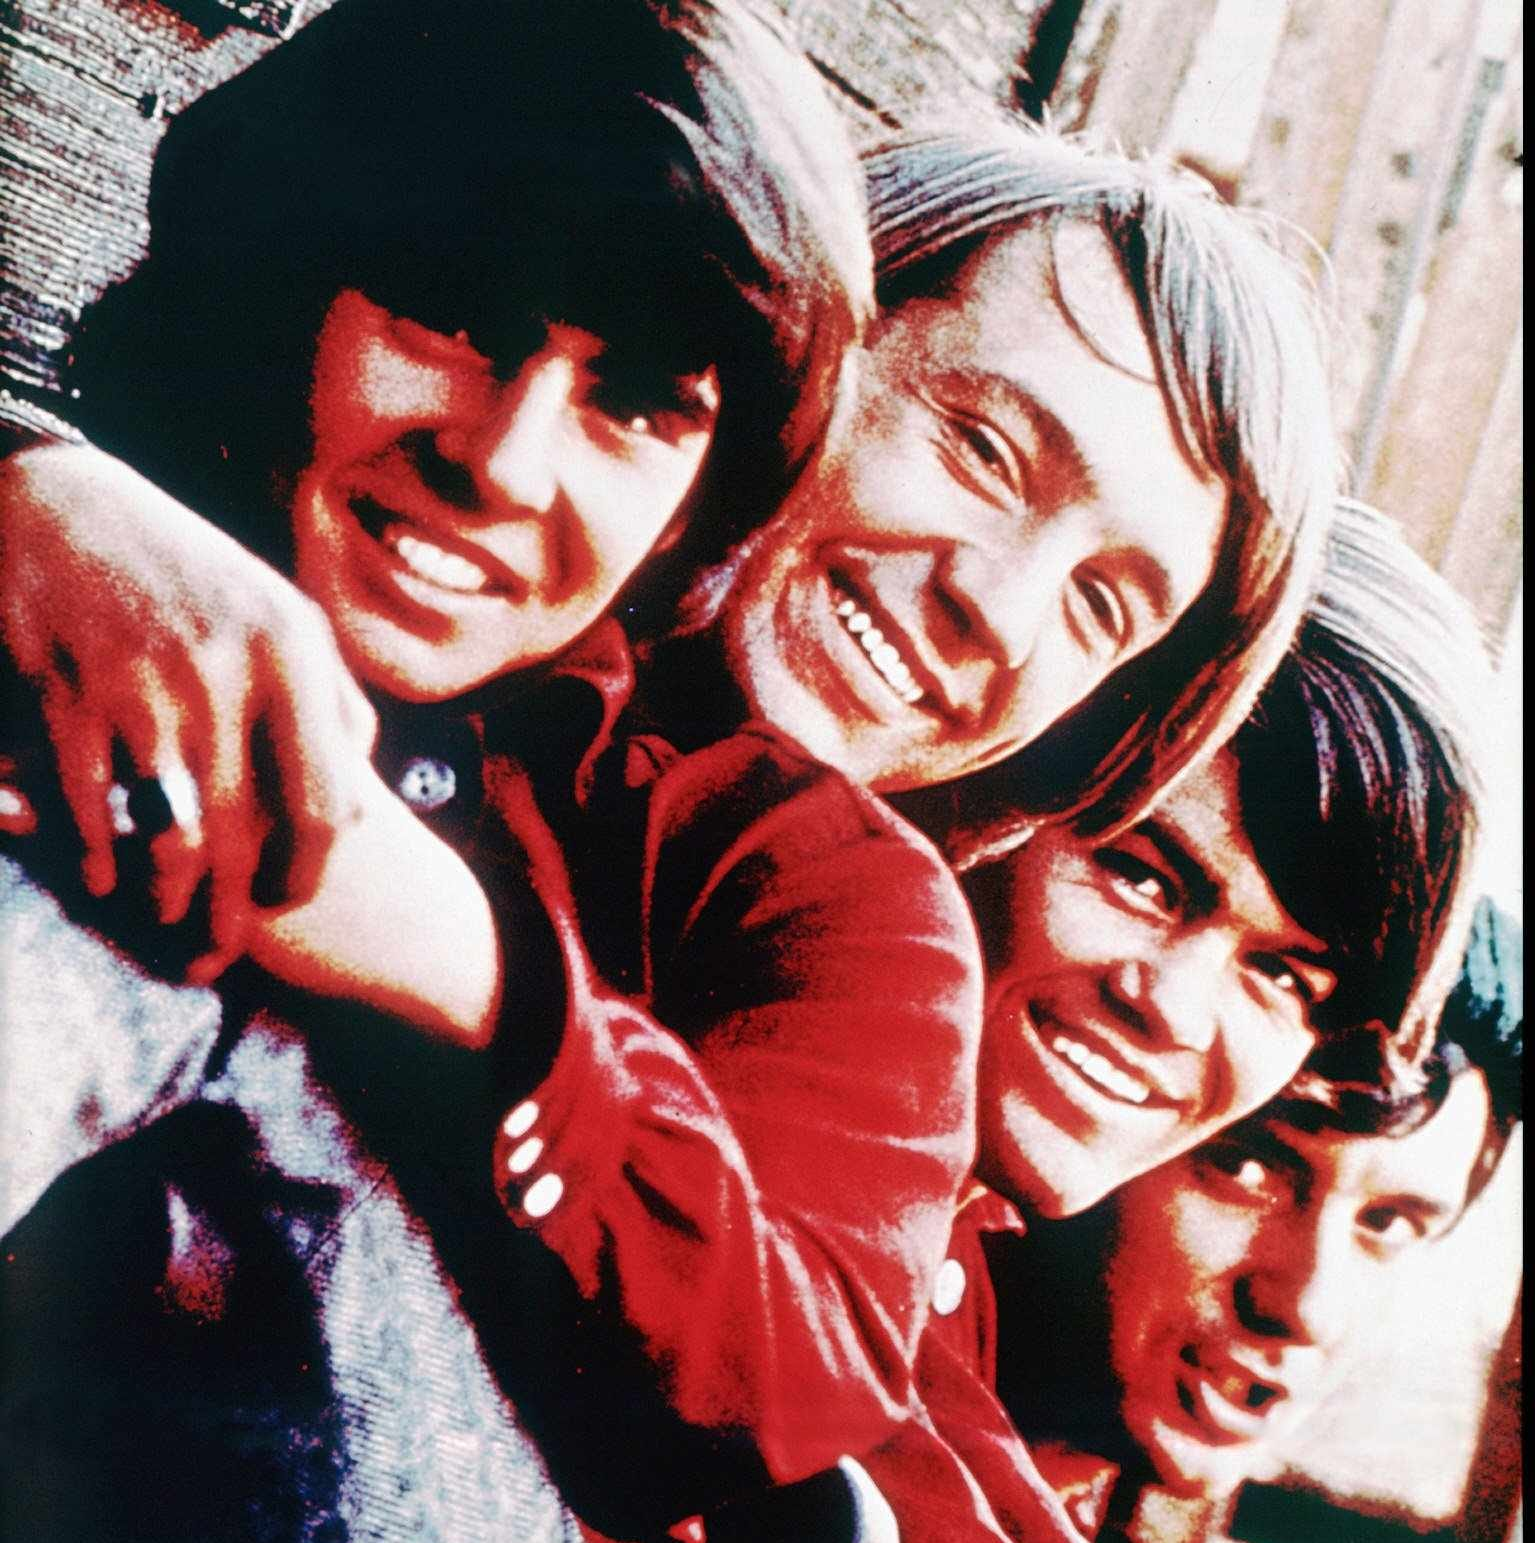 Suzy Fleming Leonard: So long, Peter Tork; thanks for making me a daydream believer